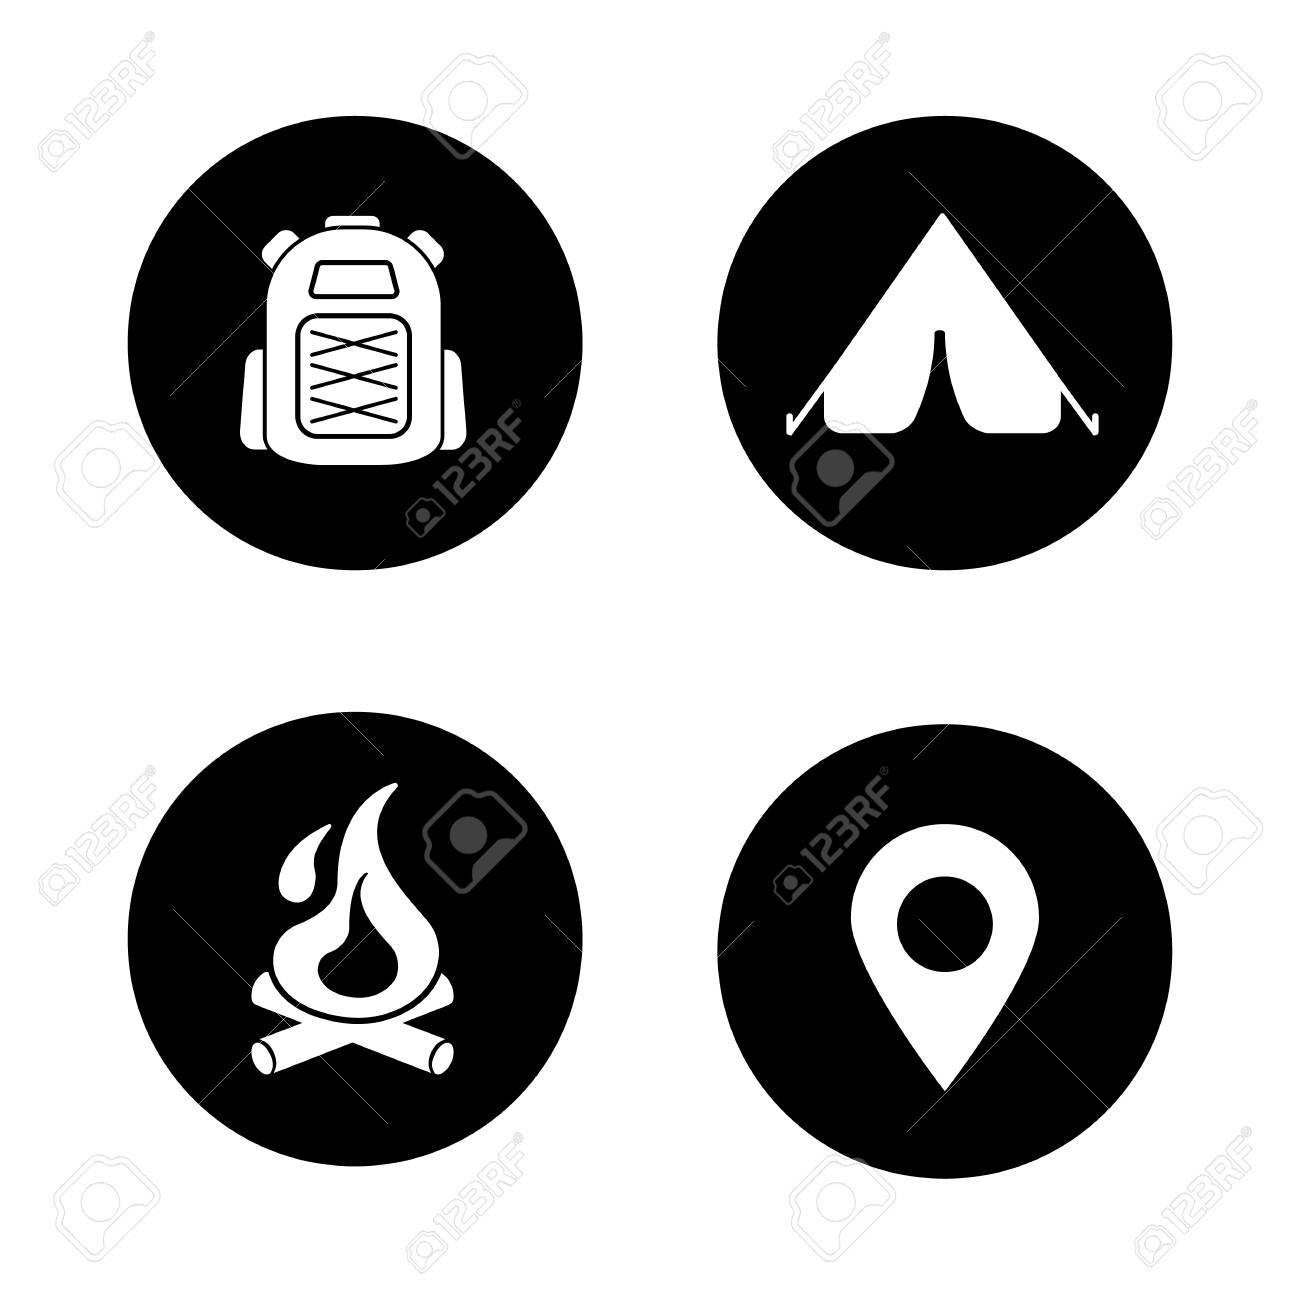 052beb571fc7 Travel and mountaineering white silhouettes illustrations. Fireplace and  hiking backpack